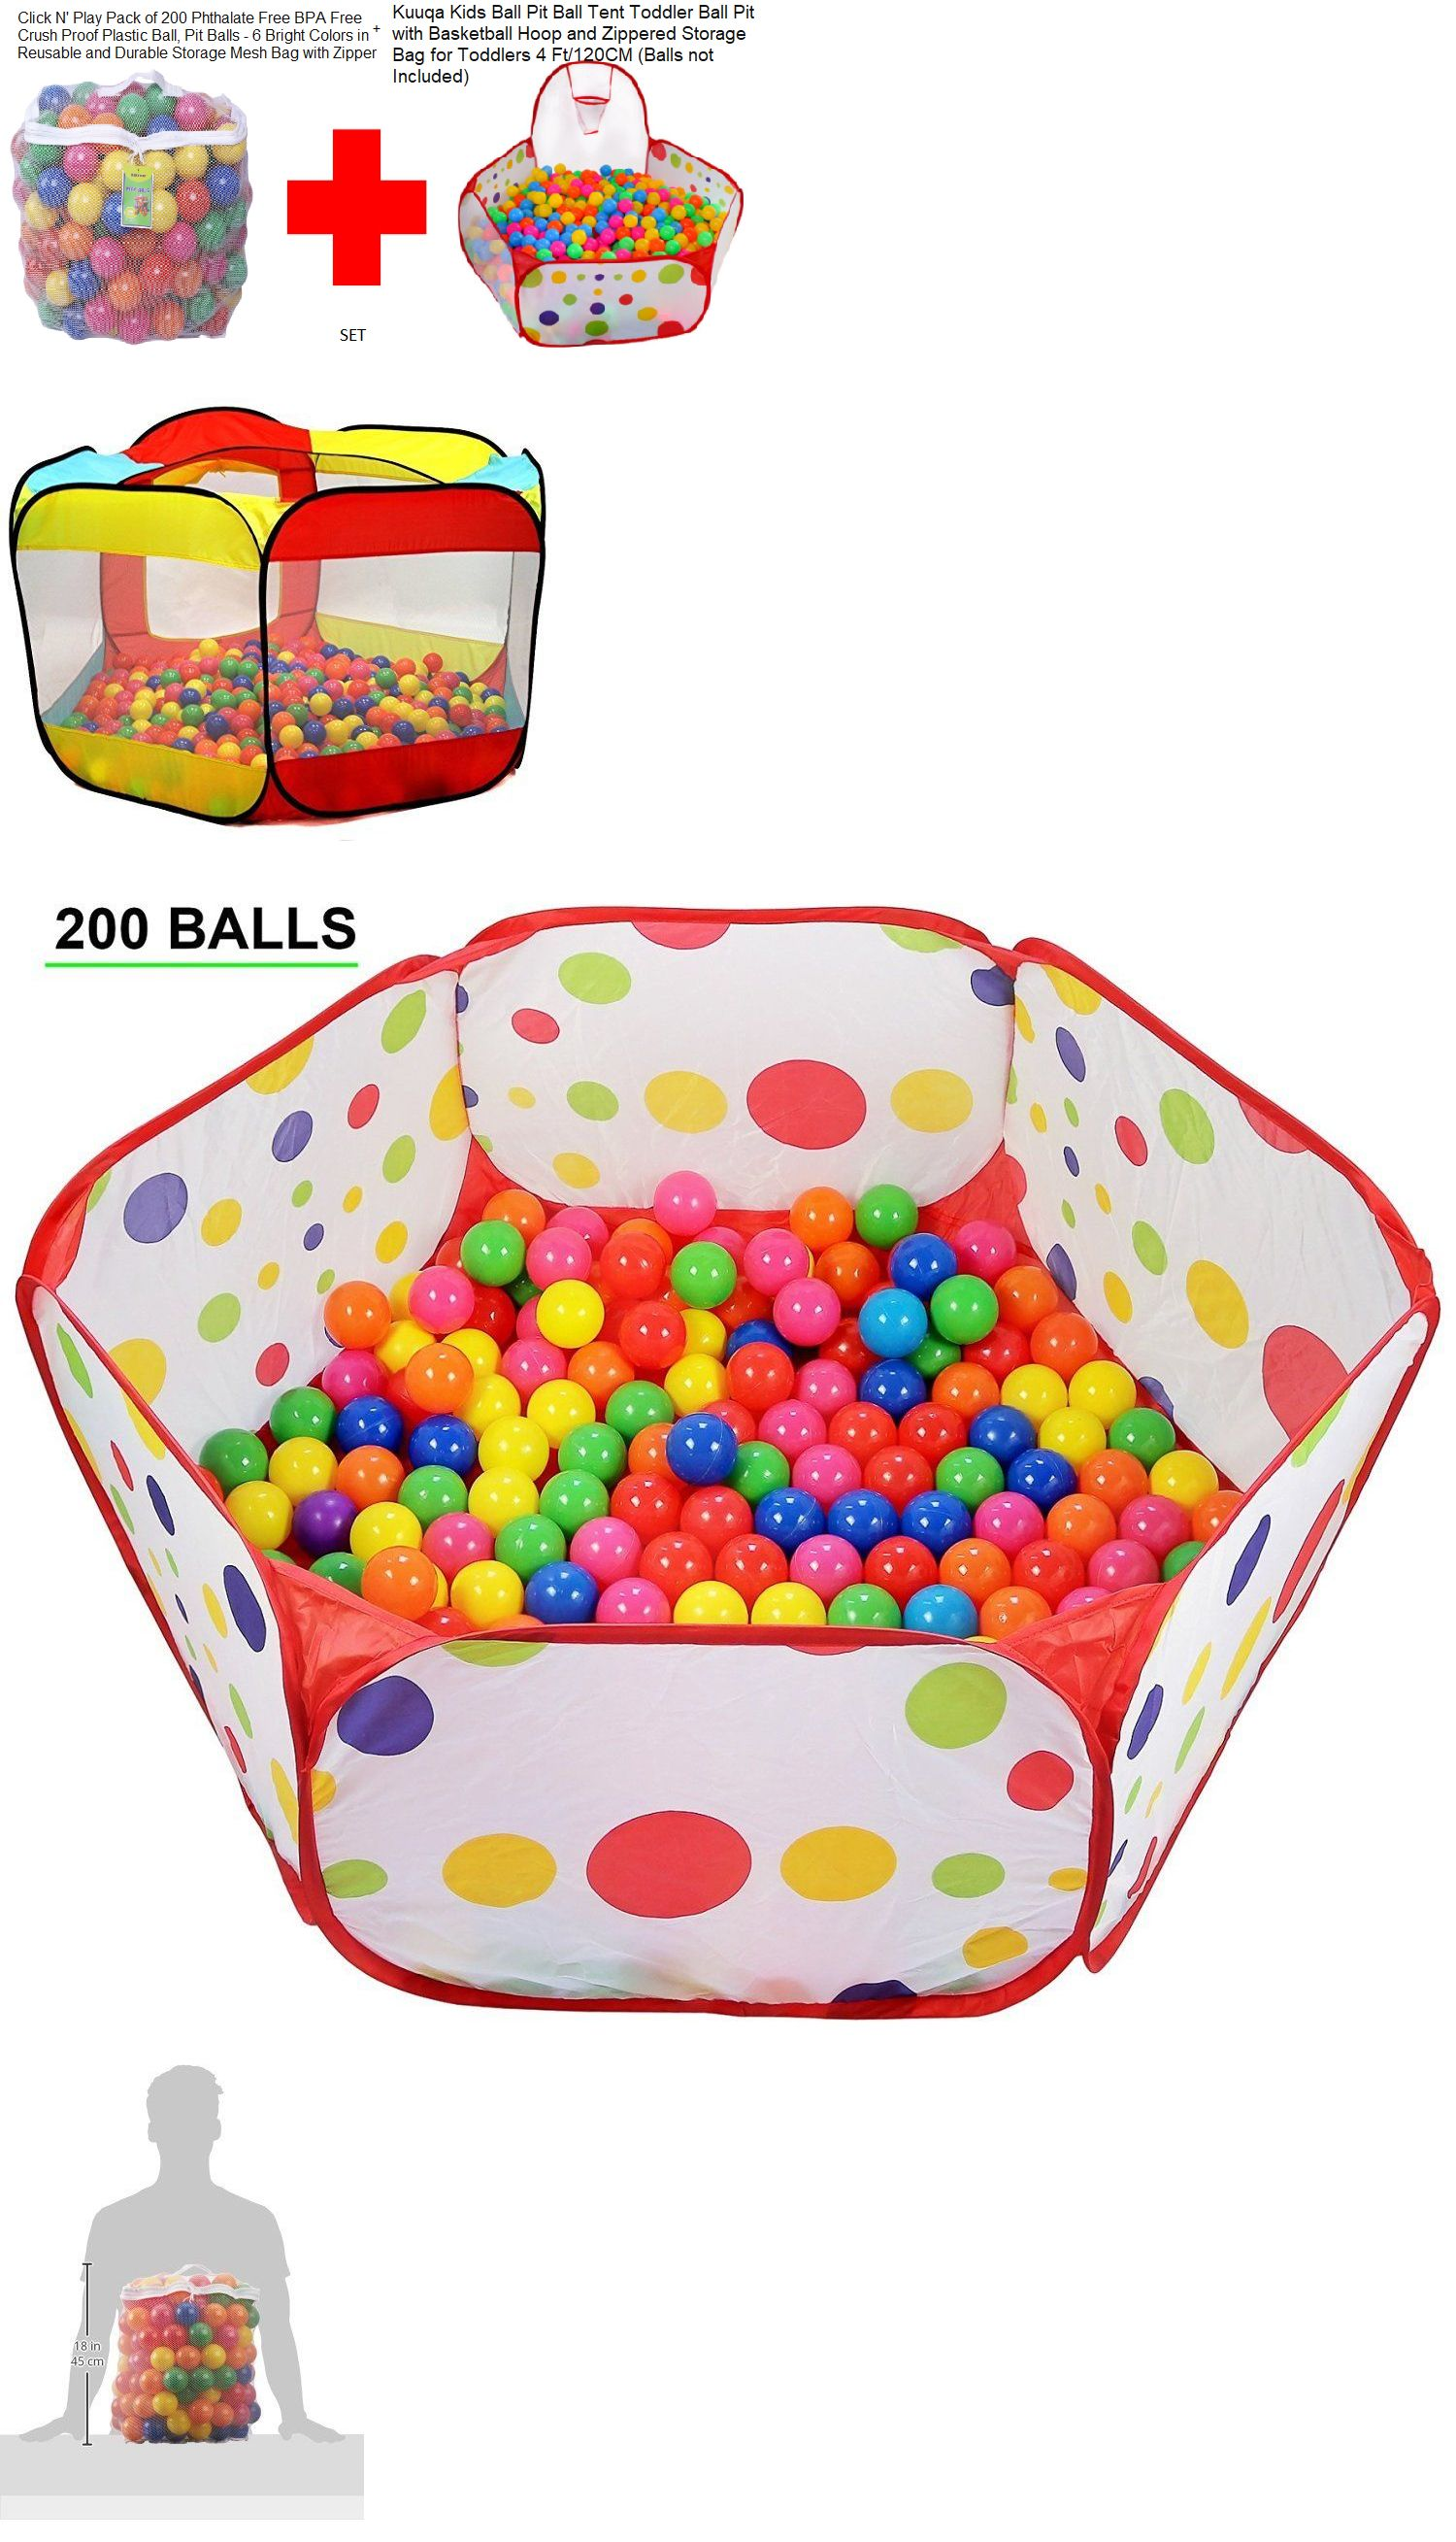 Pit Balls 145996 Click N Play Pack Of 200 + Ball Pit Ball Tent Toddler Ball With Basketball[Set] -u003e BUY IT NOW ONLY $58.74 on #eBay #balls #click #toddler  sc 1 st  Pinterest & Pit Balls 145996: Click N Play Pack Of 200 + Ball Pit Ball Tent ...